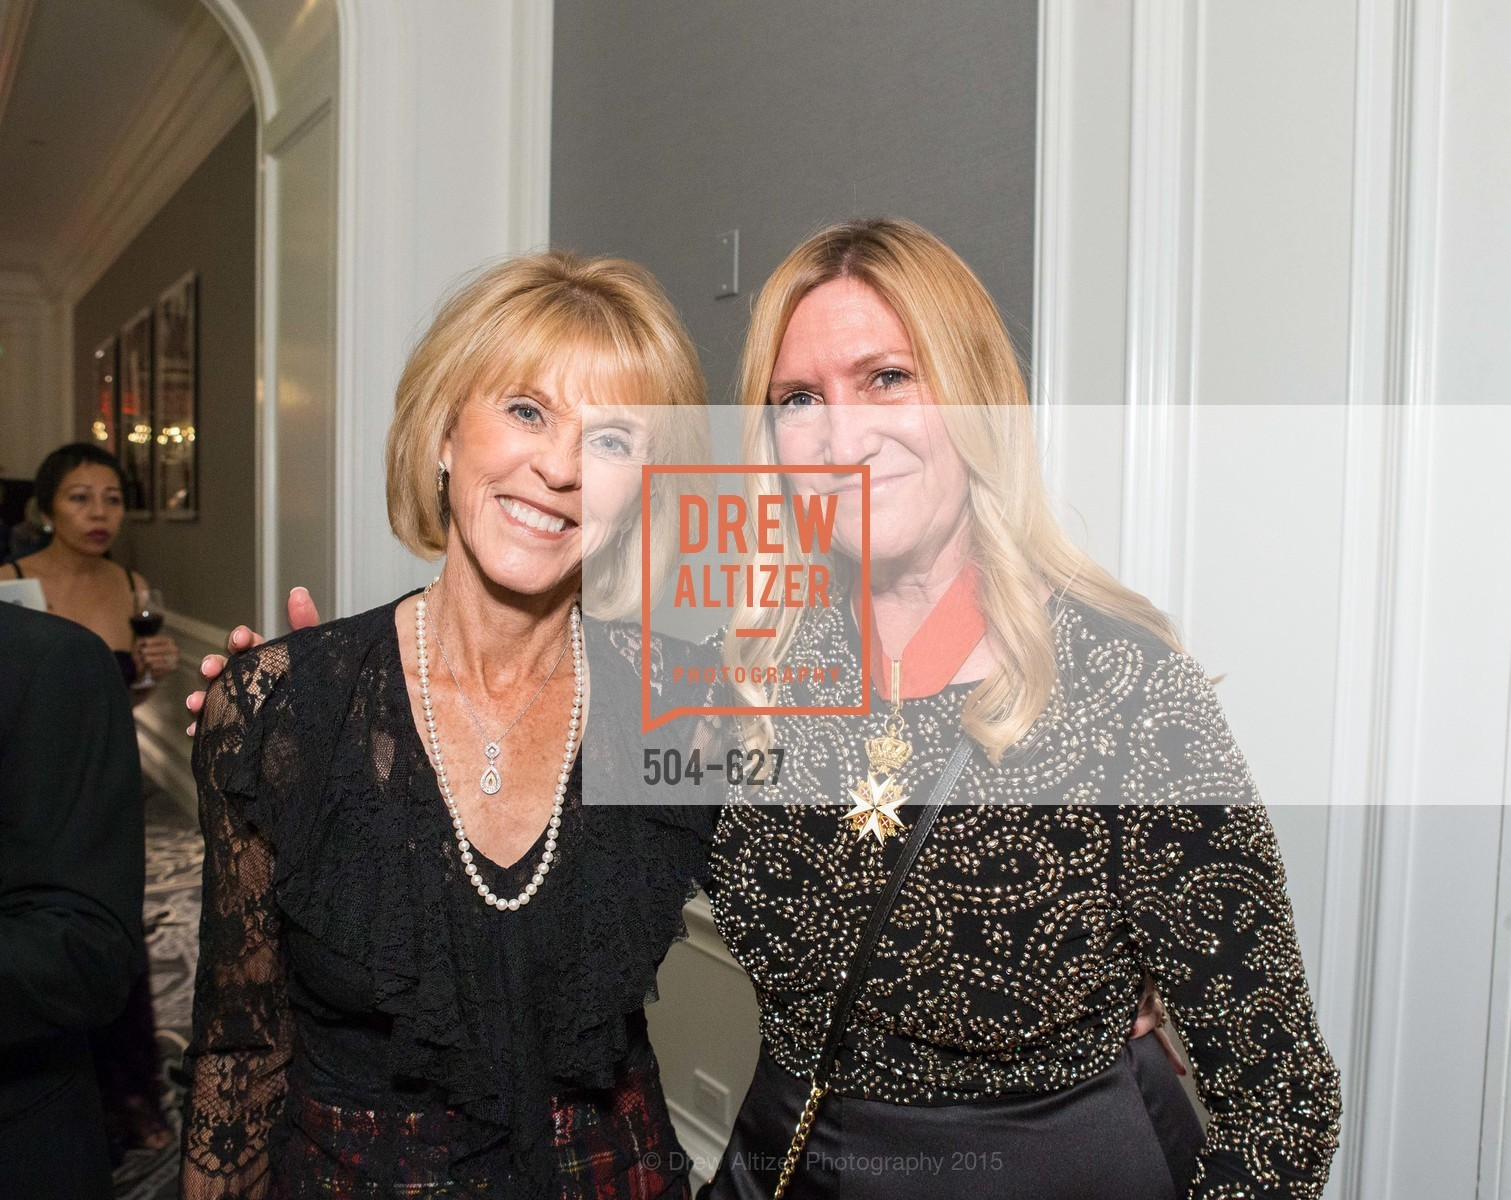 Mary Kay Marvin, Kim Worrall, Sovereign Order Of St John of Jerusalem Knights Hospitaller Gala, Ritz Carlton San Francisco, December 5th, 2015,Drew Altizer, Drew Altizer Photography, full-service agency, private events, San Francisco photographer, photographer california